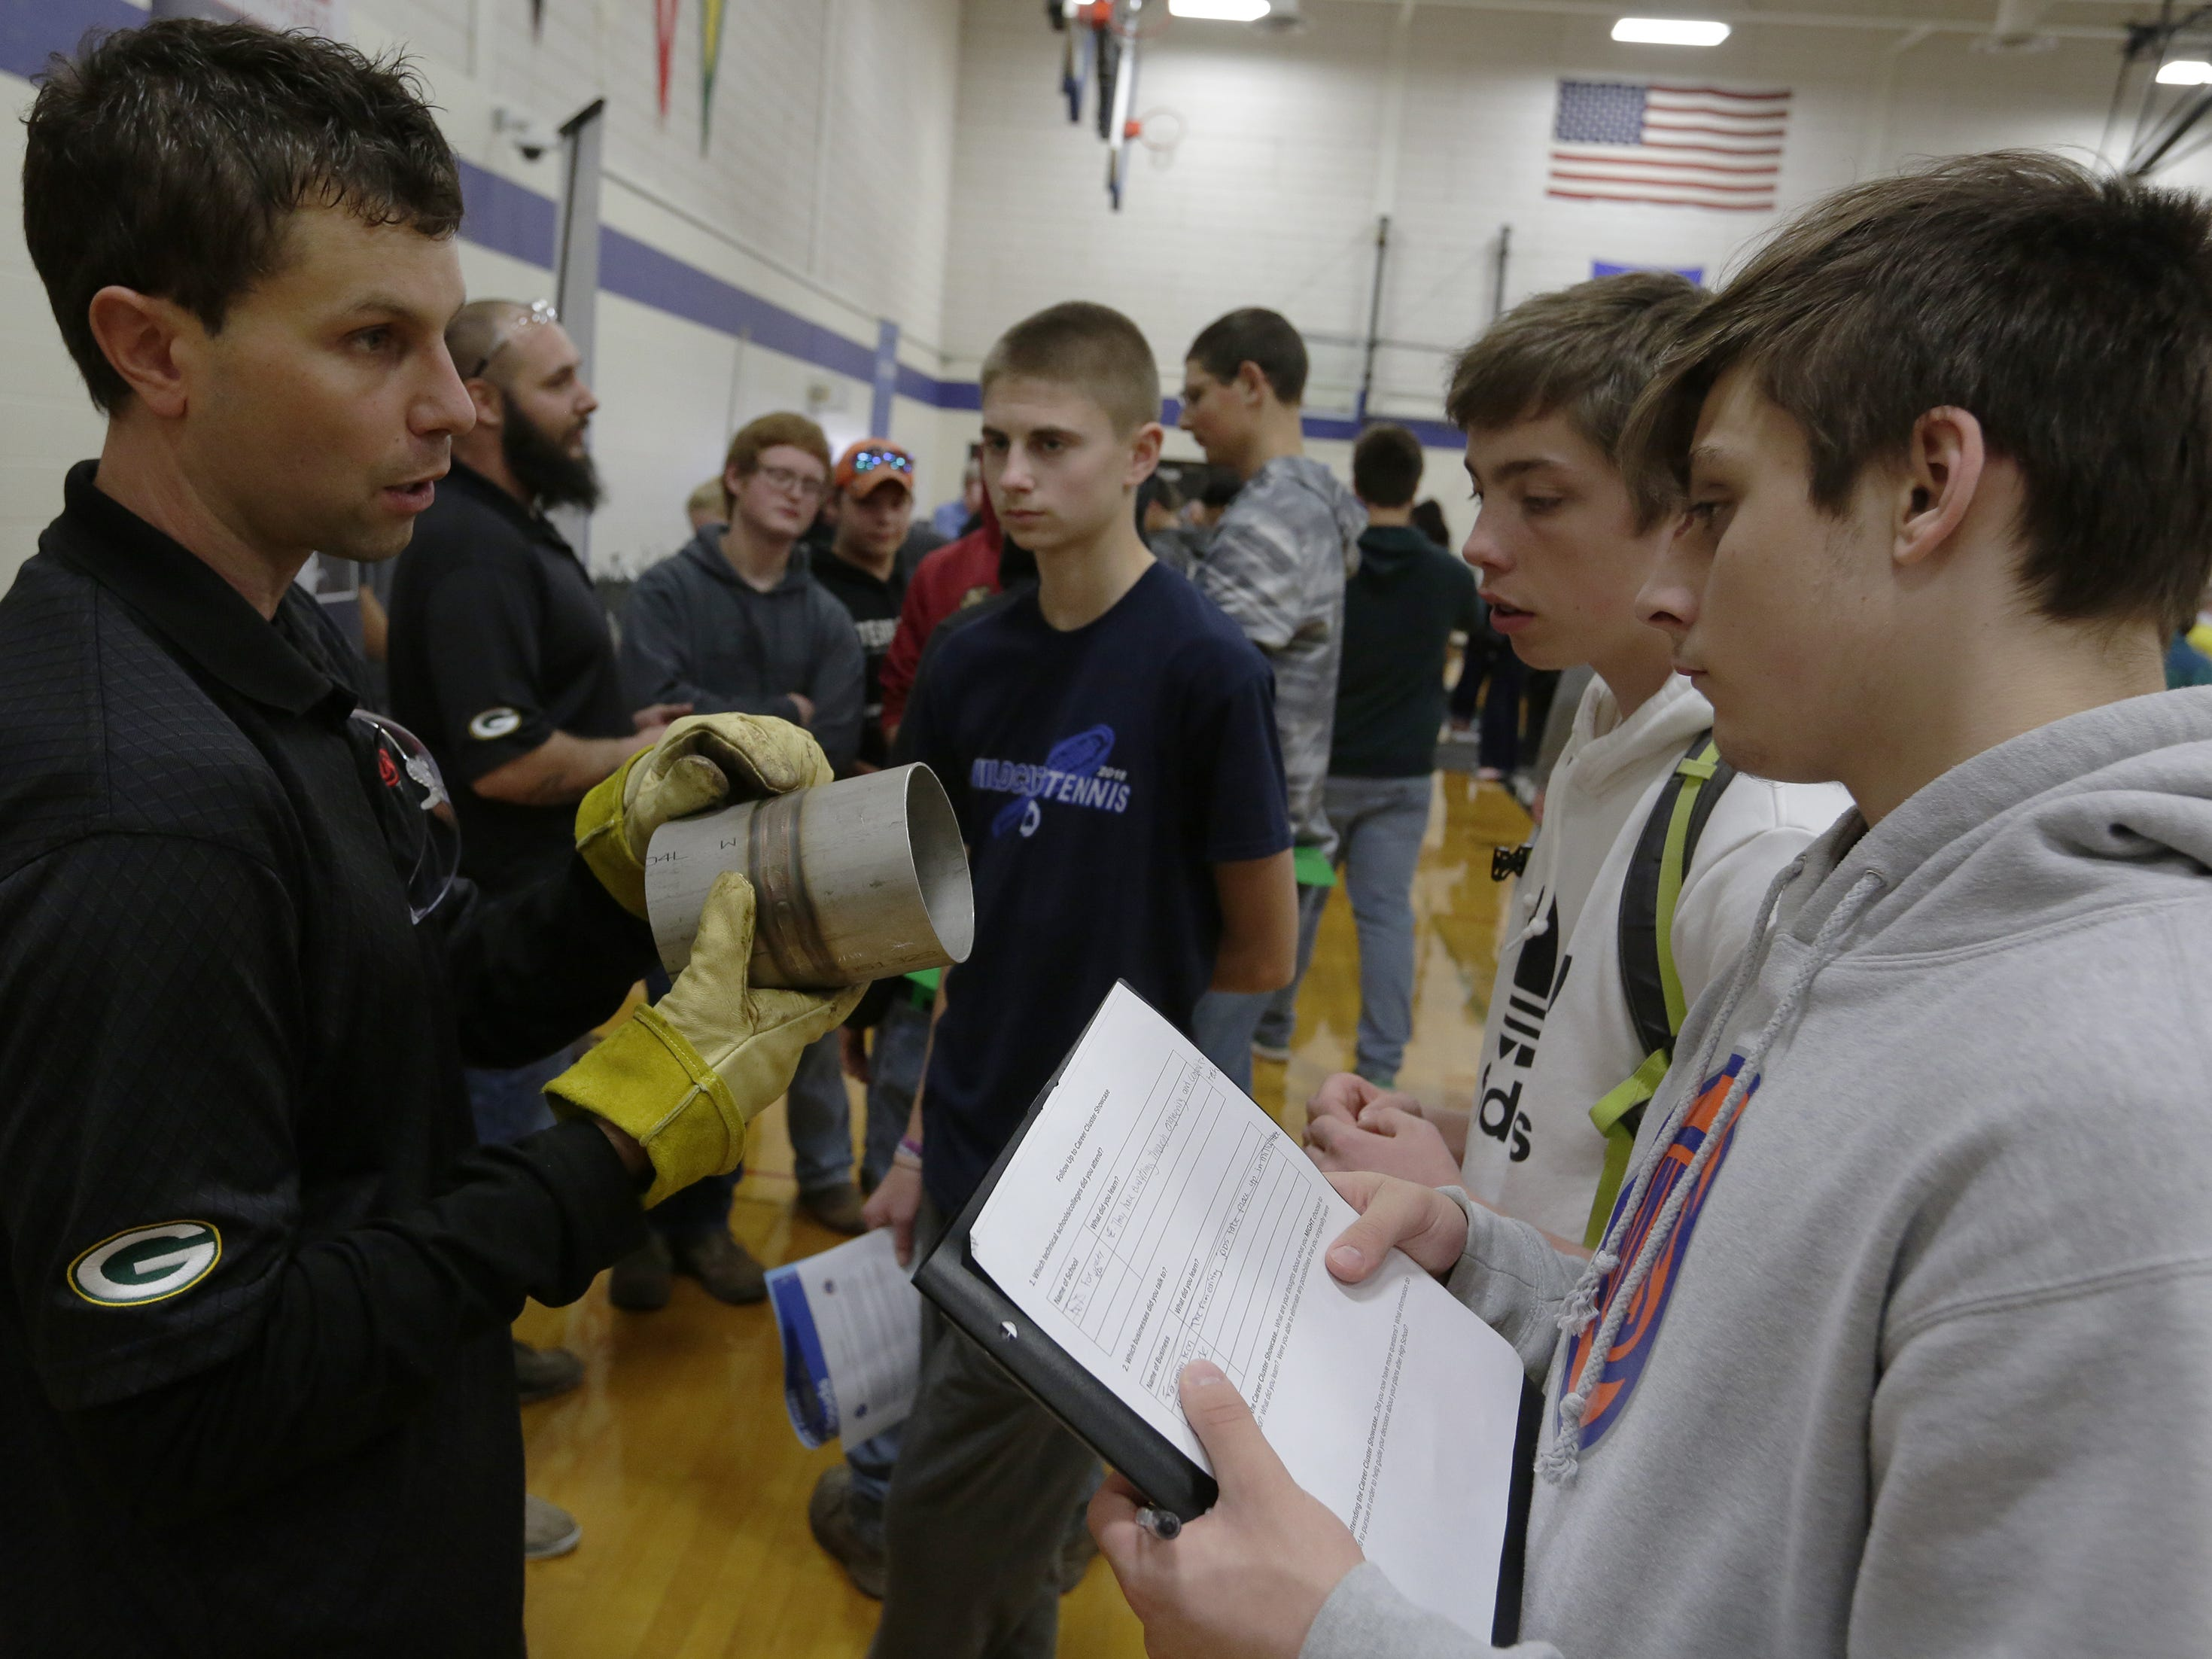 D.J. Kloida, youth apprenticeship coordinator with UA 400 Pipe Trades, talks with Ian Steward and Matt Hientzelmeier during the Oshkosh Chamber of Commerce's Career Exploration Fair on Tuesday, Oct. 23, 2018, at Oshkosh West High School. About 1,000 students from Oshkosh and Omro middle and high schools participated in this year's expanded fair, thanks to a $5,000 grant from AT&T.